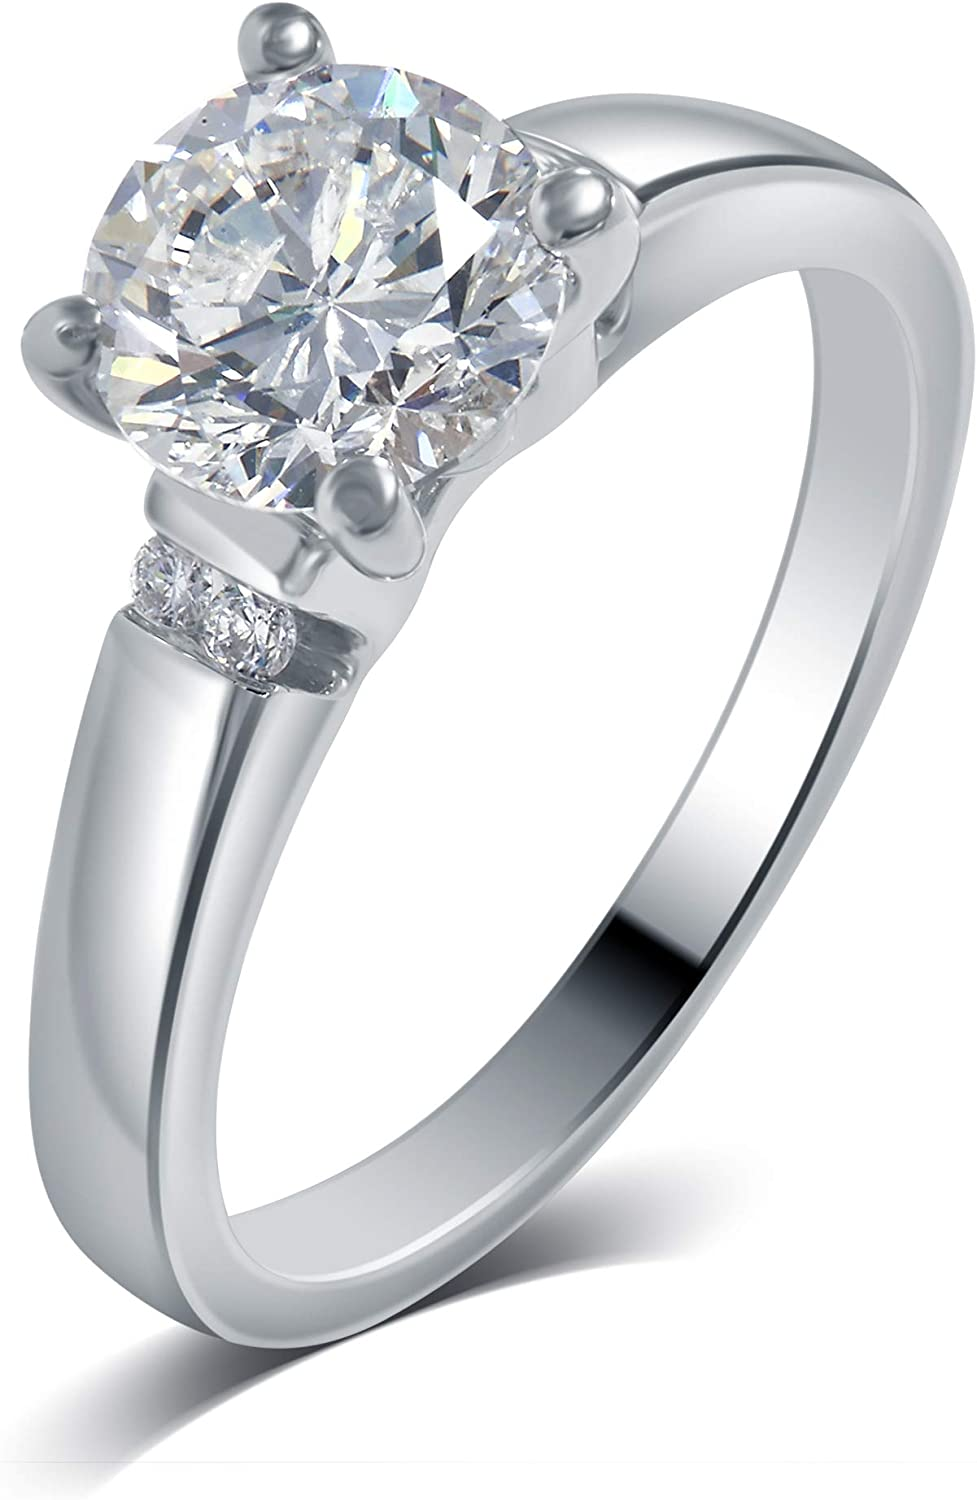 La4ve Diamonds 1.06 Carat Diamond Solitaire Engagement Ring in 14K White Gold (Color - H-I) (Clarity - SI1)